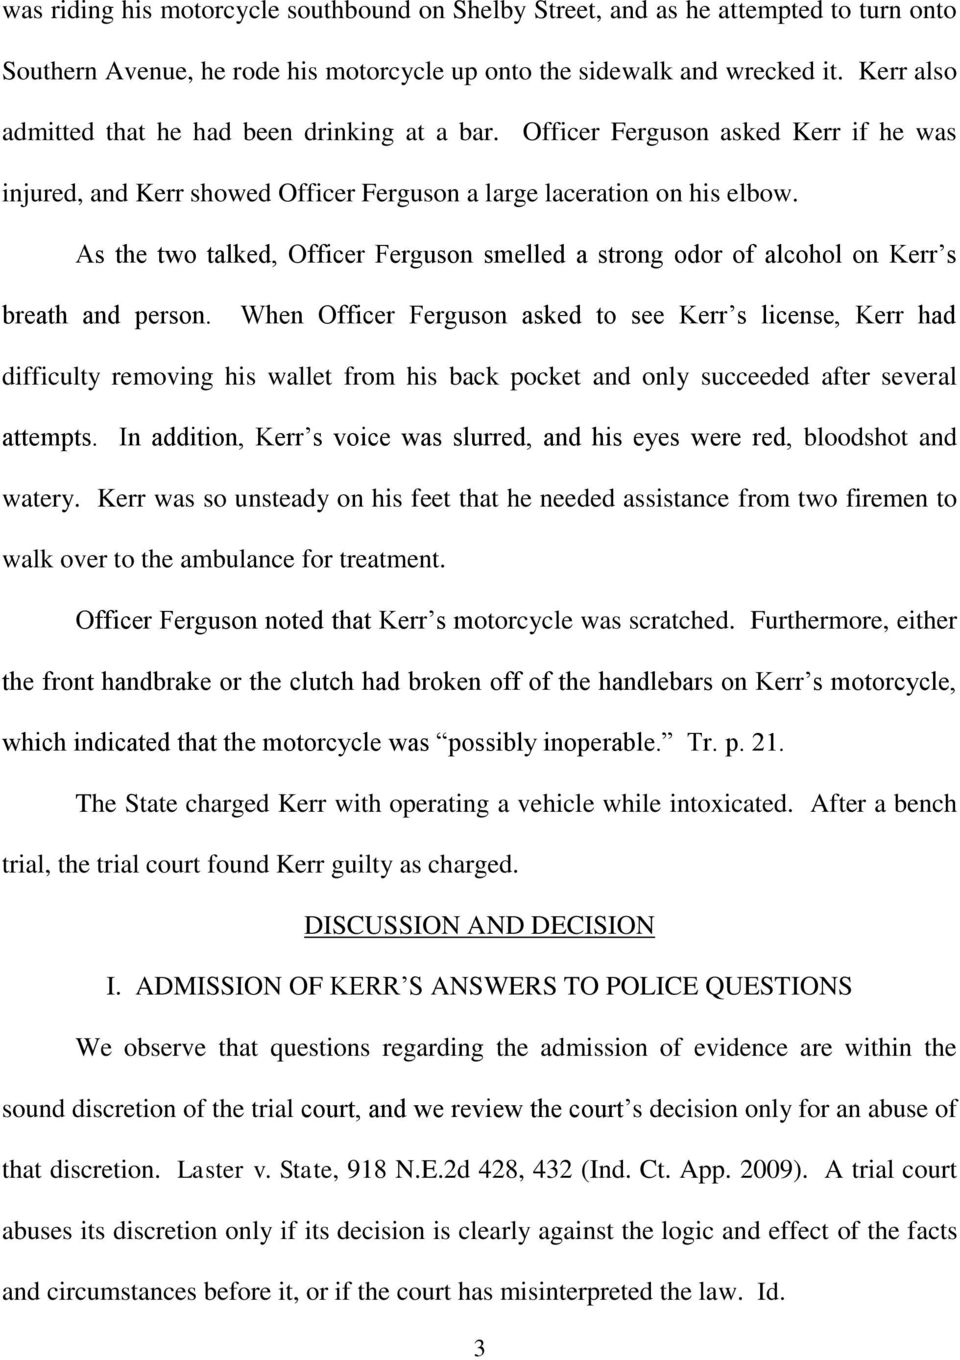 As the two talked, Officer Ferguson smelled a strong odor of alcohol on Kerr s breath and person.